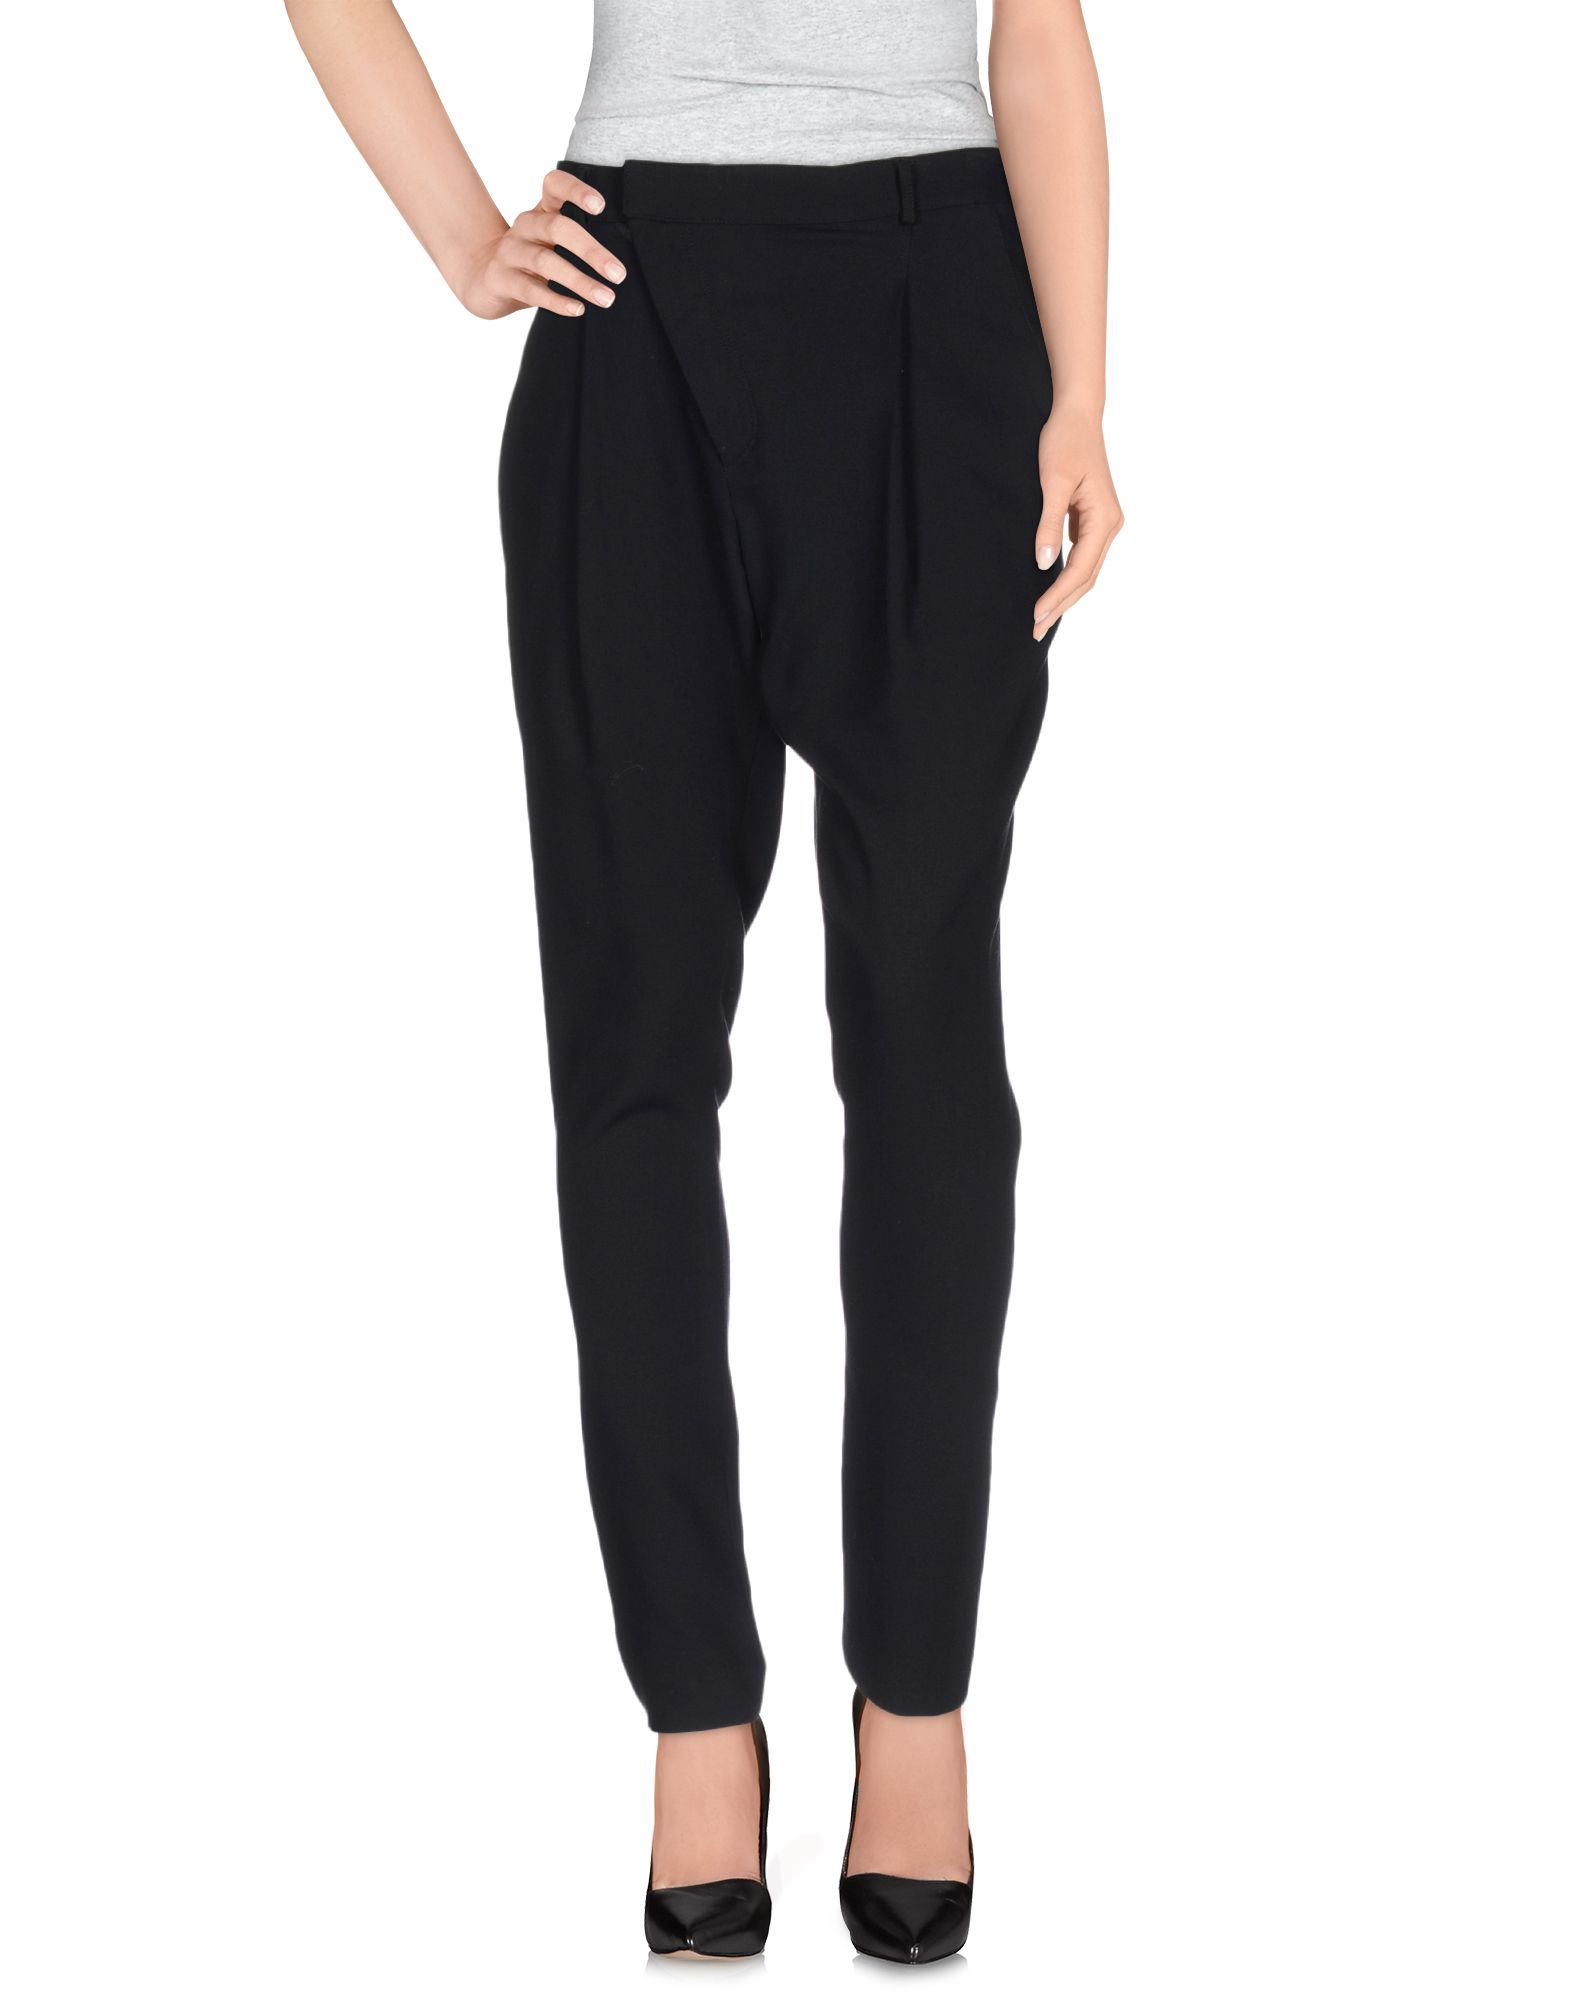 Pantalone Helmut Lang Donna - Acquista online su EBuuqwr7s